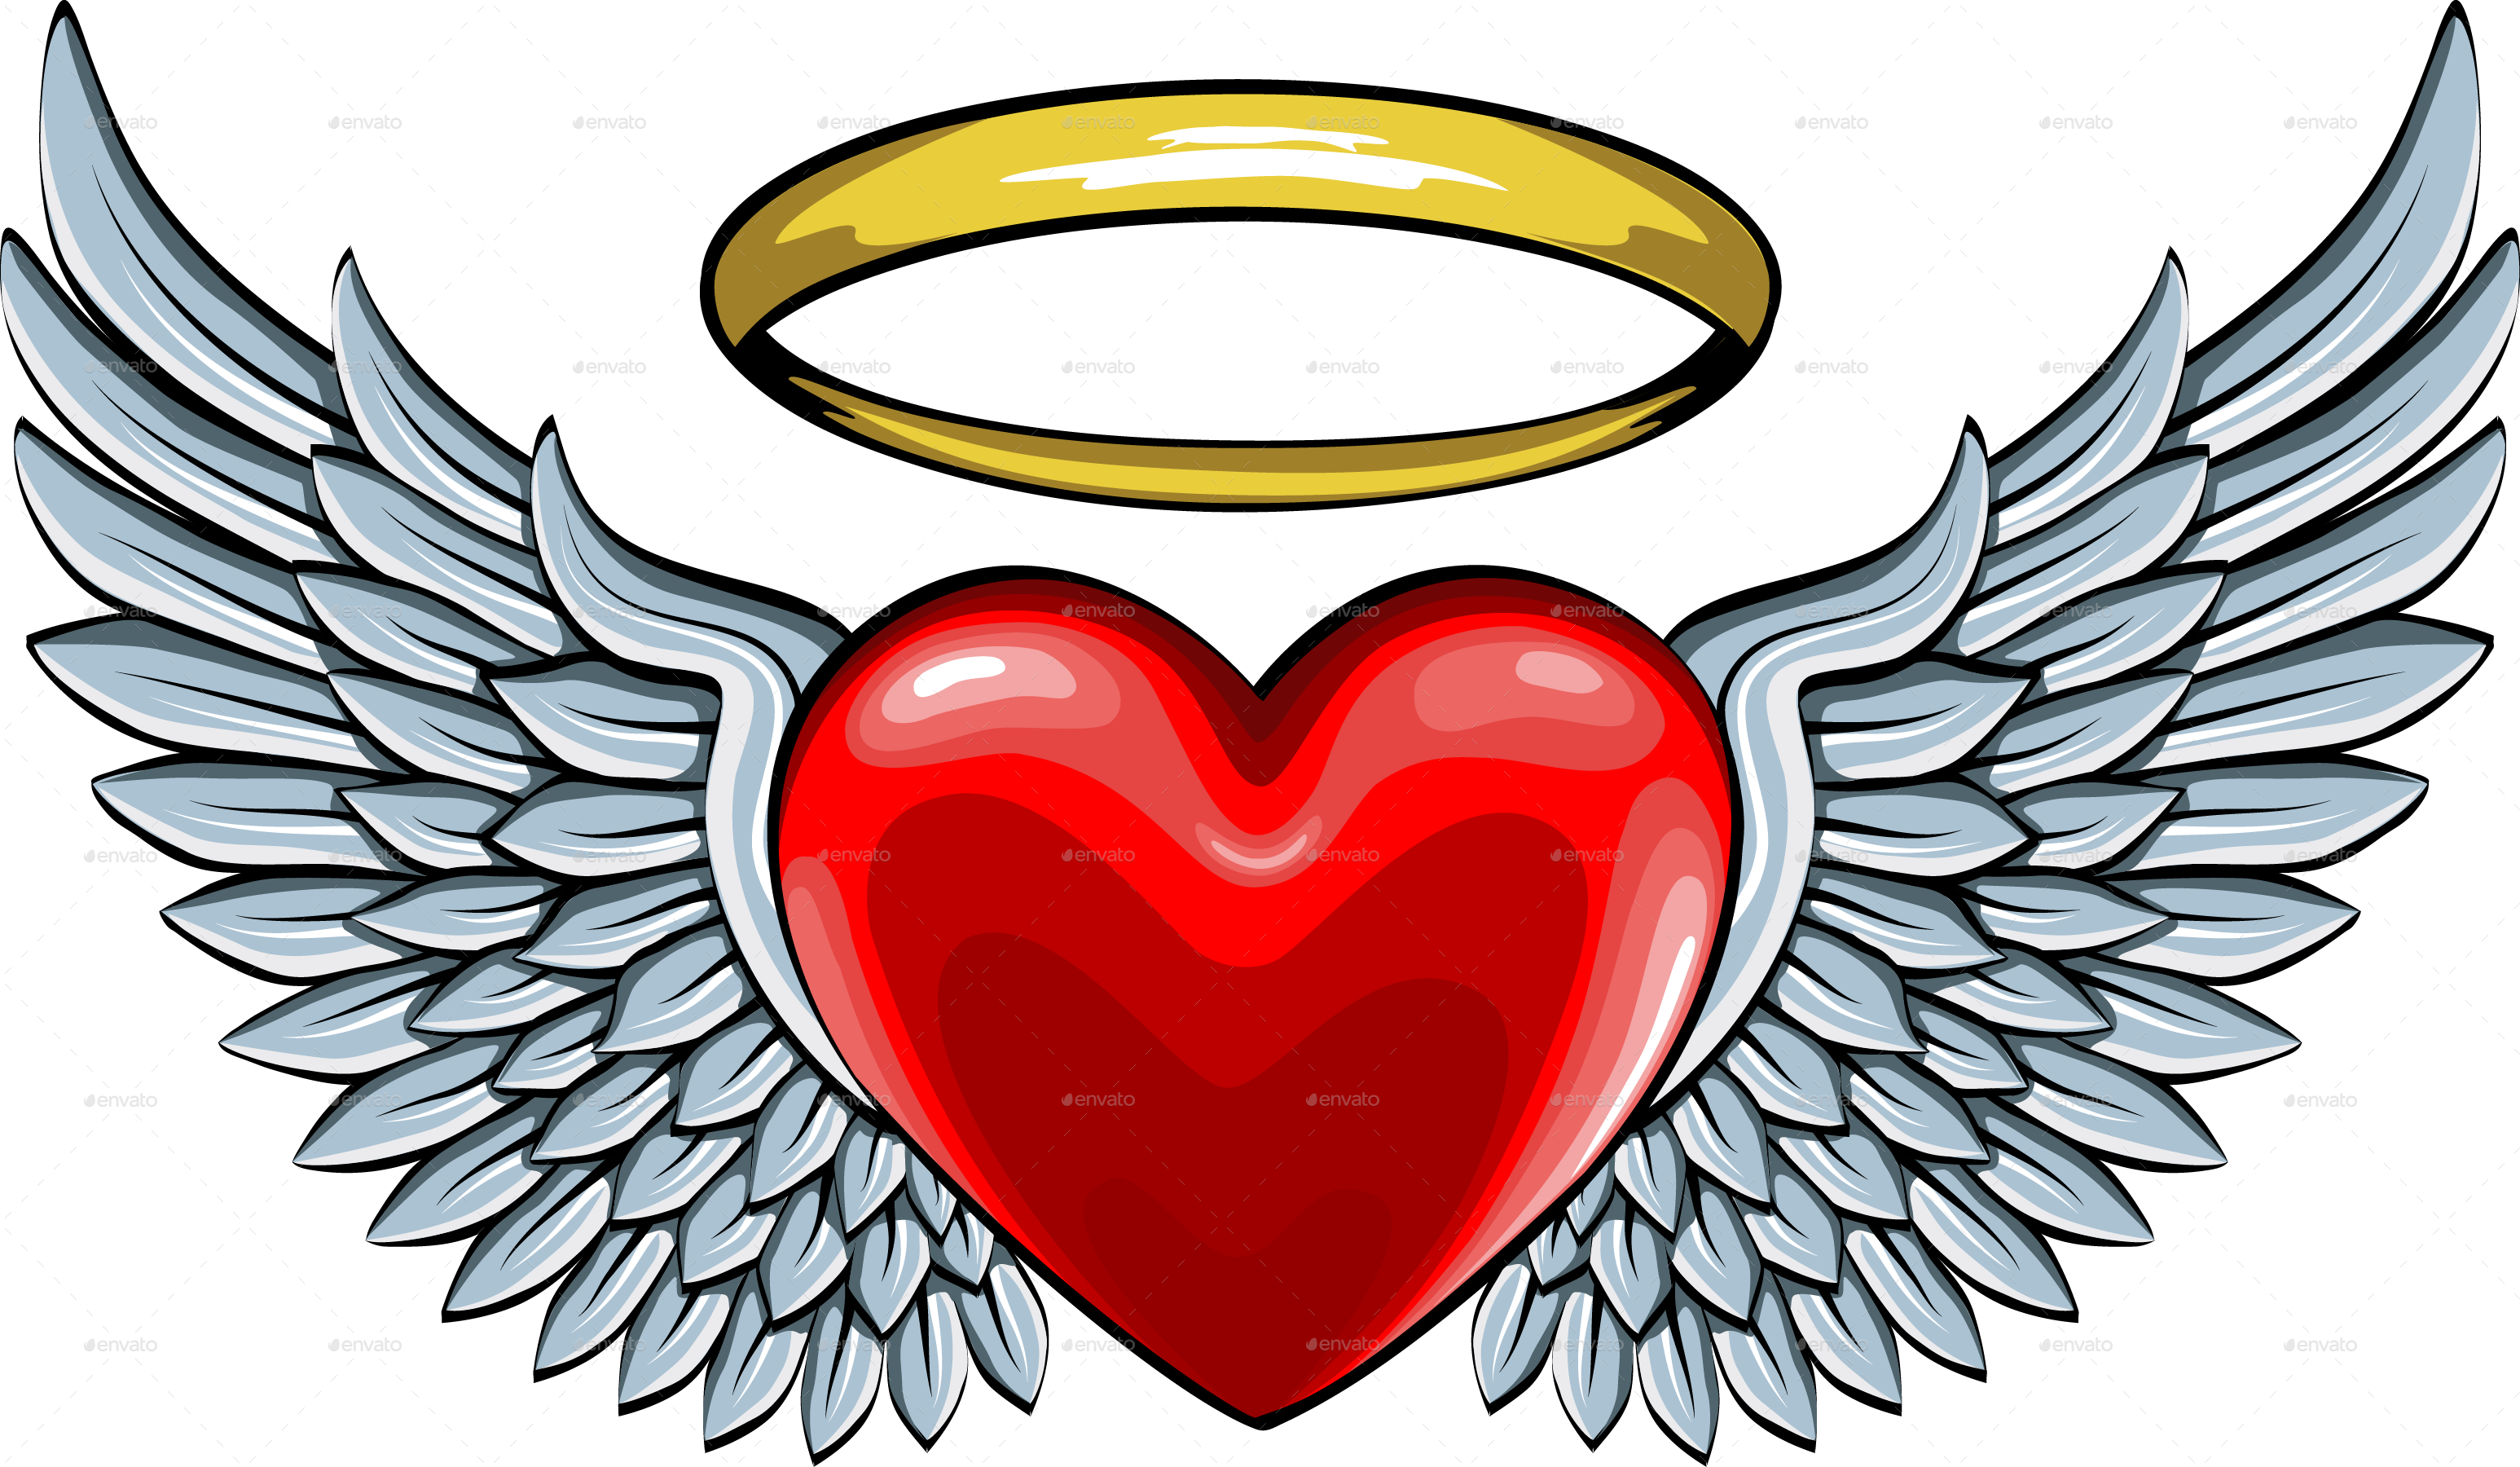 vector freeuse library Halo clipart angel wings heart. V sledok vyh ad